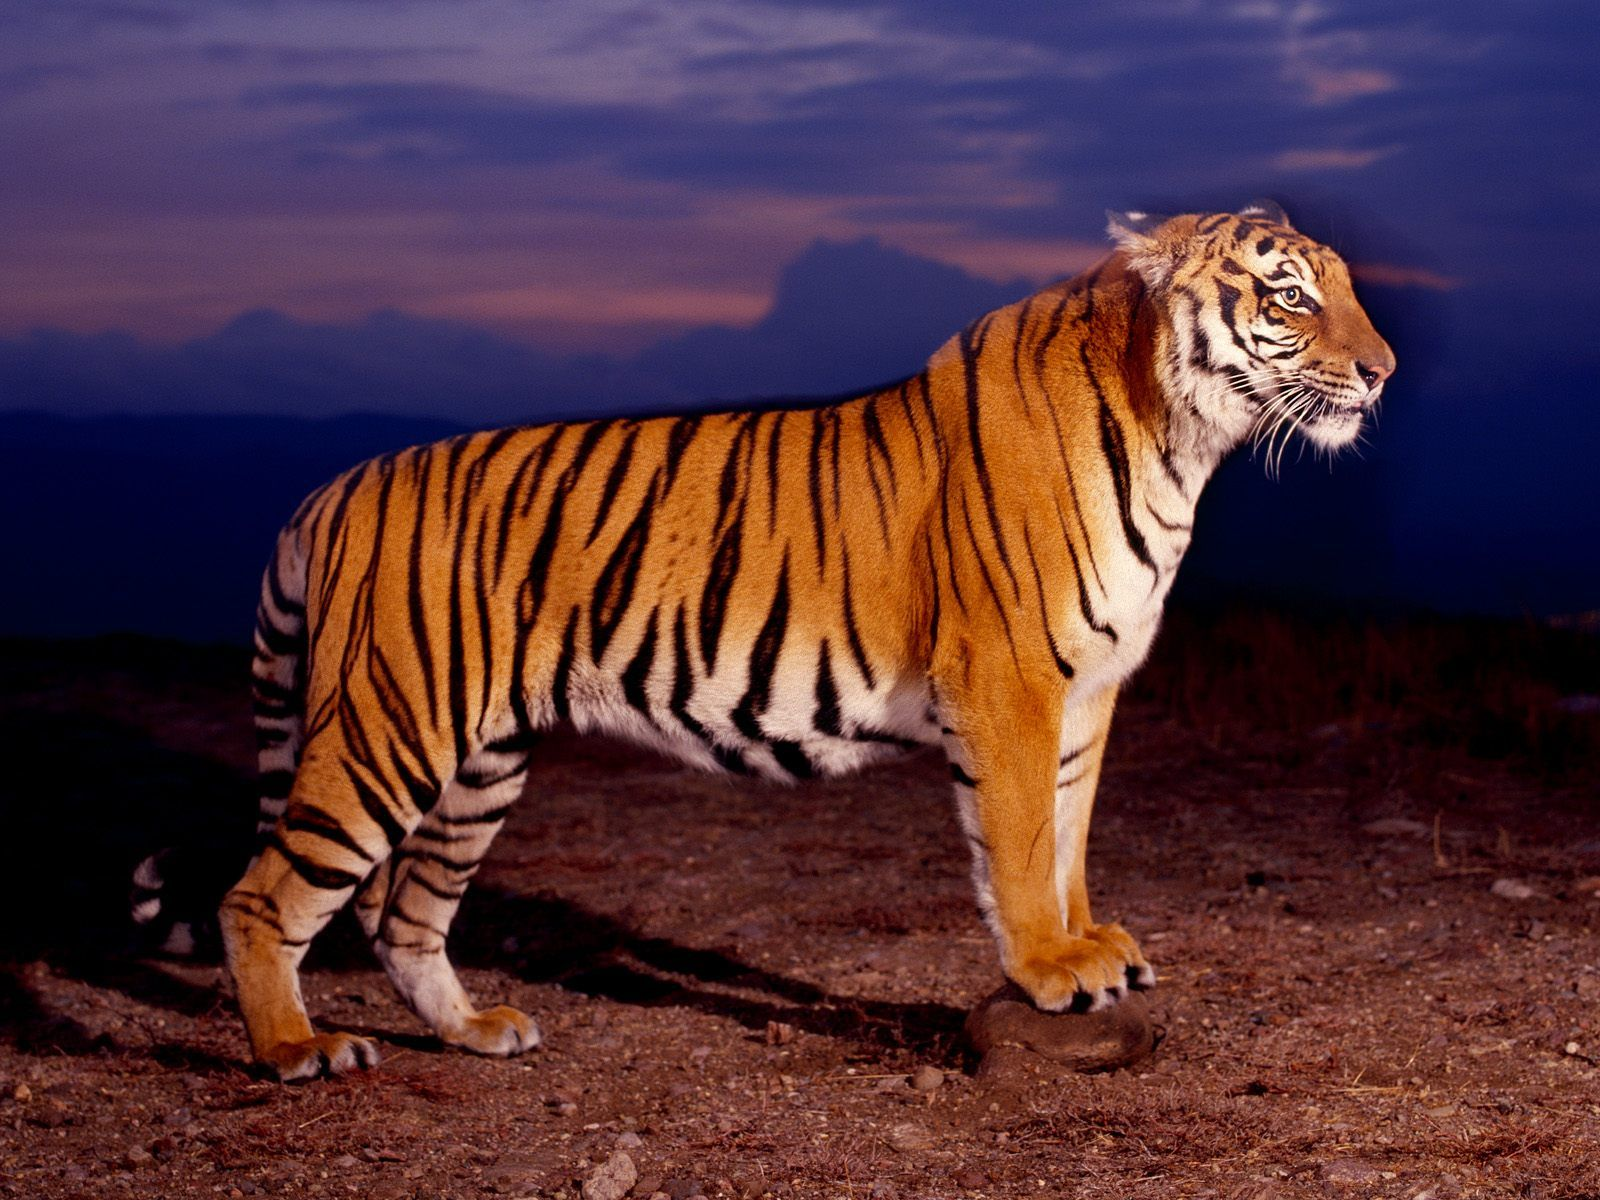 tiger standing and ready to attack wallpaper | tigers | pinterest